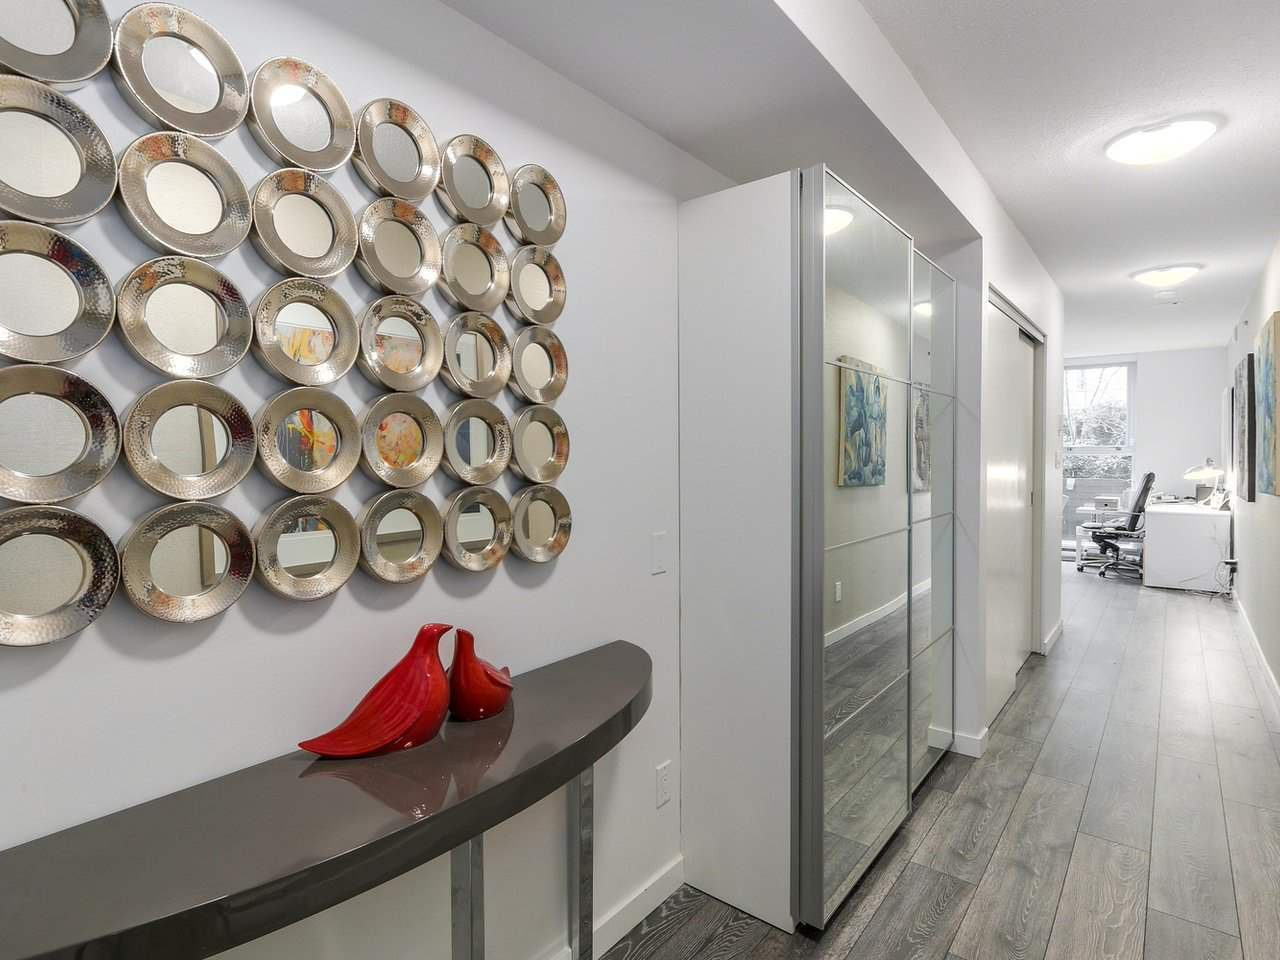 Photo 13: Photos: 217 168 POWELL Street in Vancouver: Downtown VE Condo for sale (Vancouver East)  : MLS®# R2386644